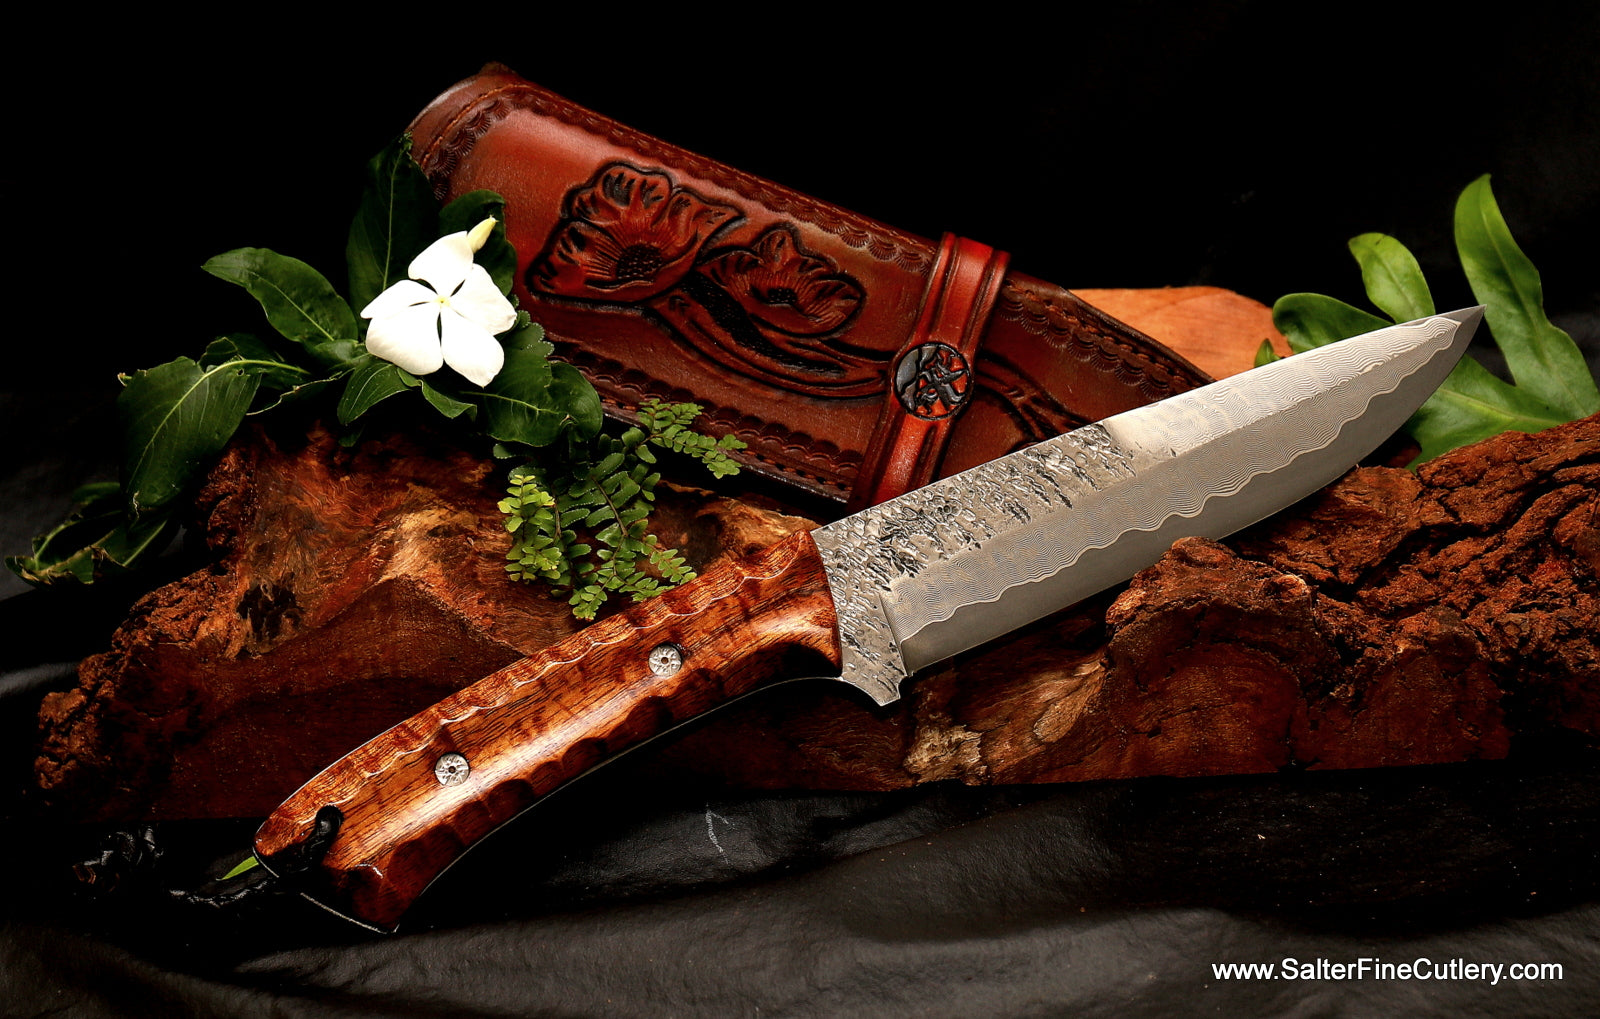 Custom hunting knife and leather sheath by Salter Fine Cutlery